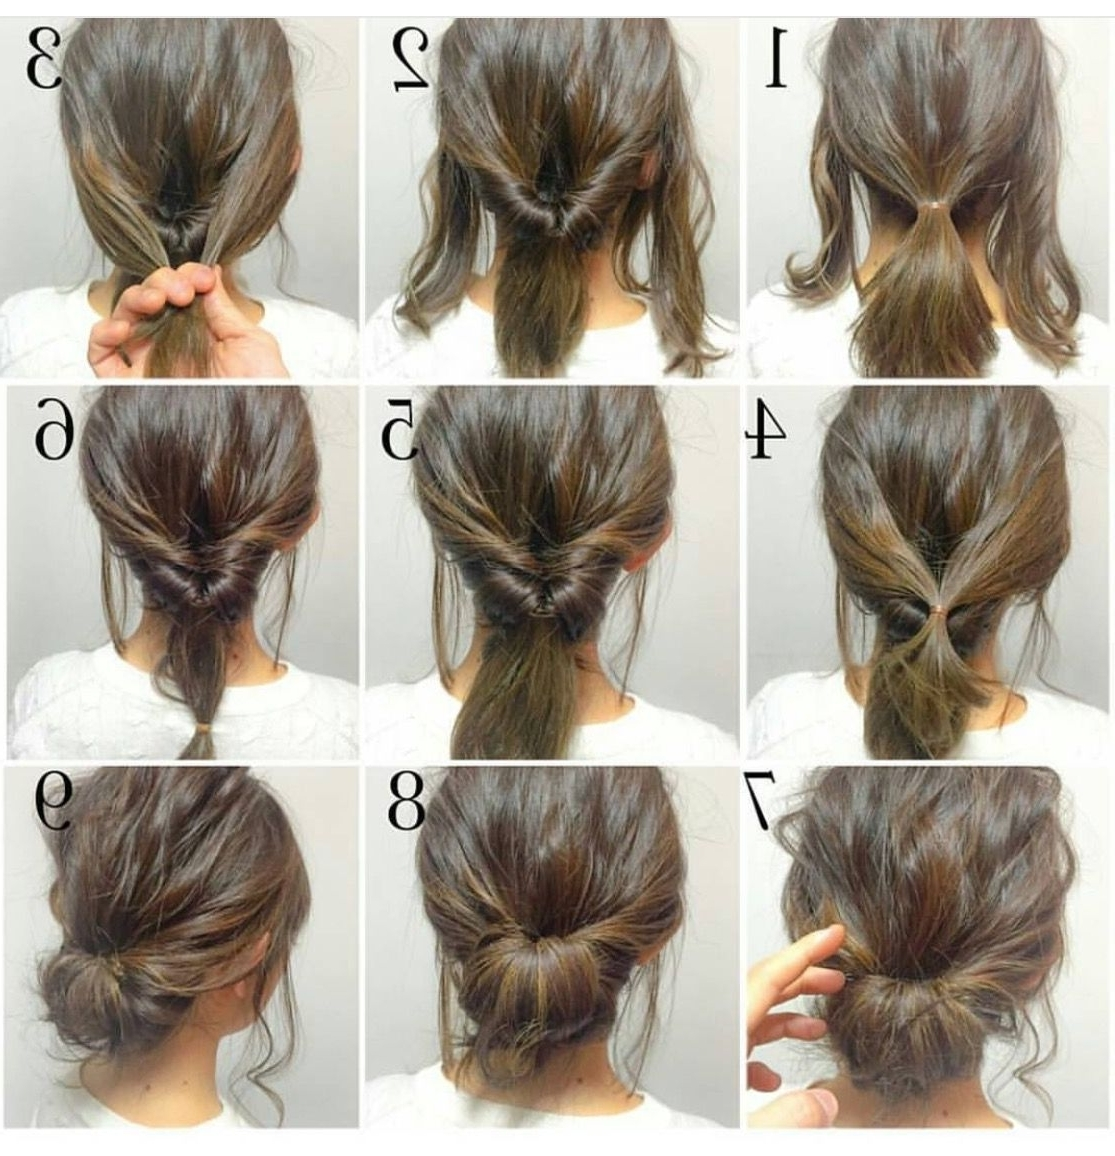 Easy, Hope This Works Out Quick Morning Hair! | • H A I R With Regard To Easy Hair Updo Hairstyles (View 11 of 15)